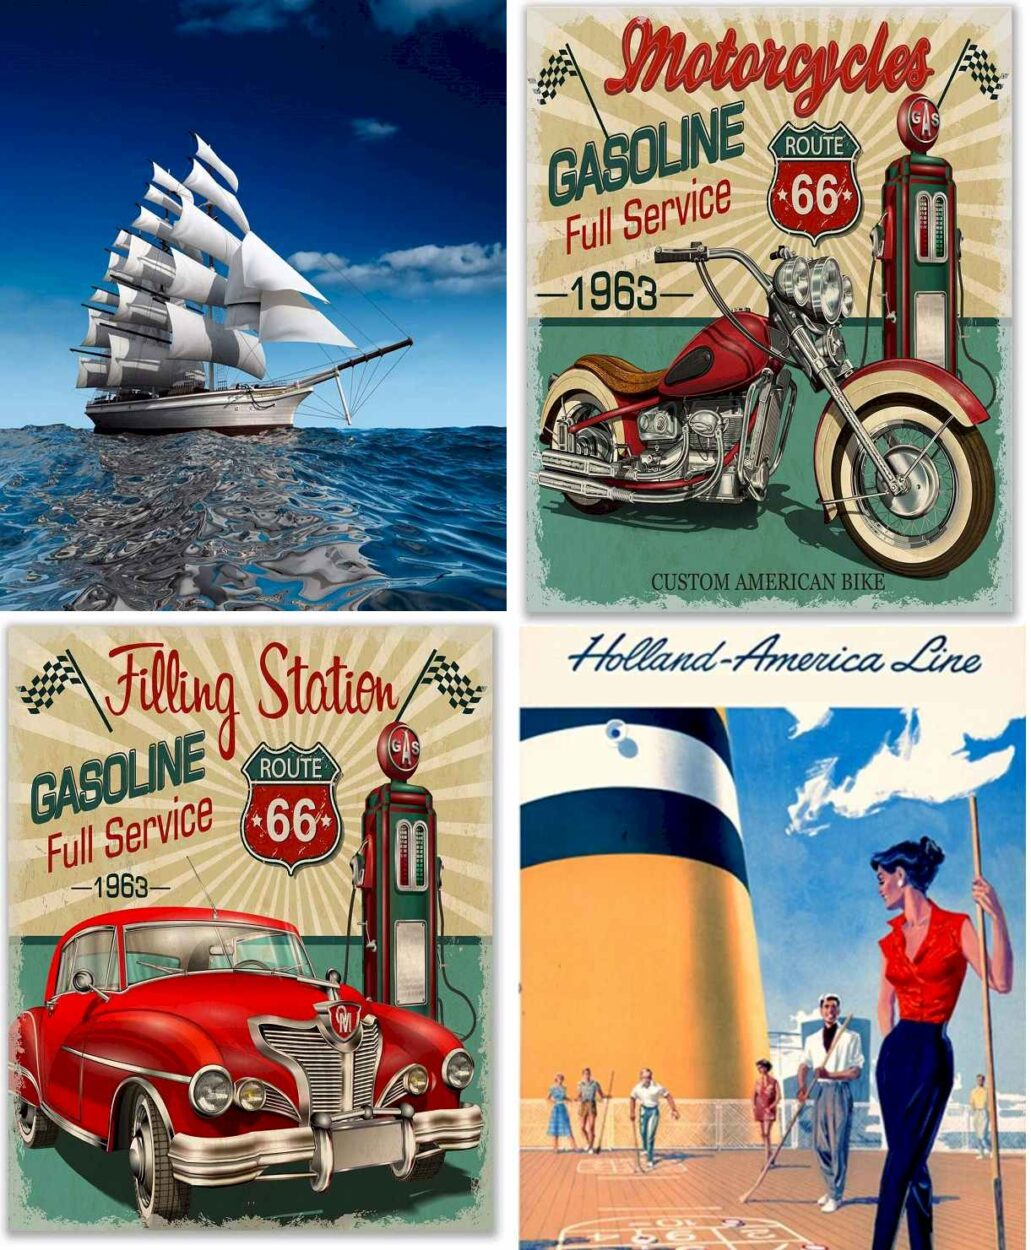 Vintage poster Prints - Best Products 2021 on Amazon